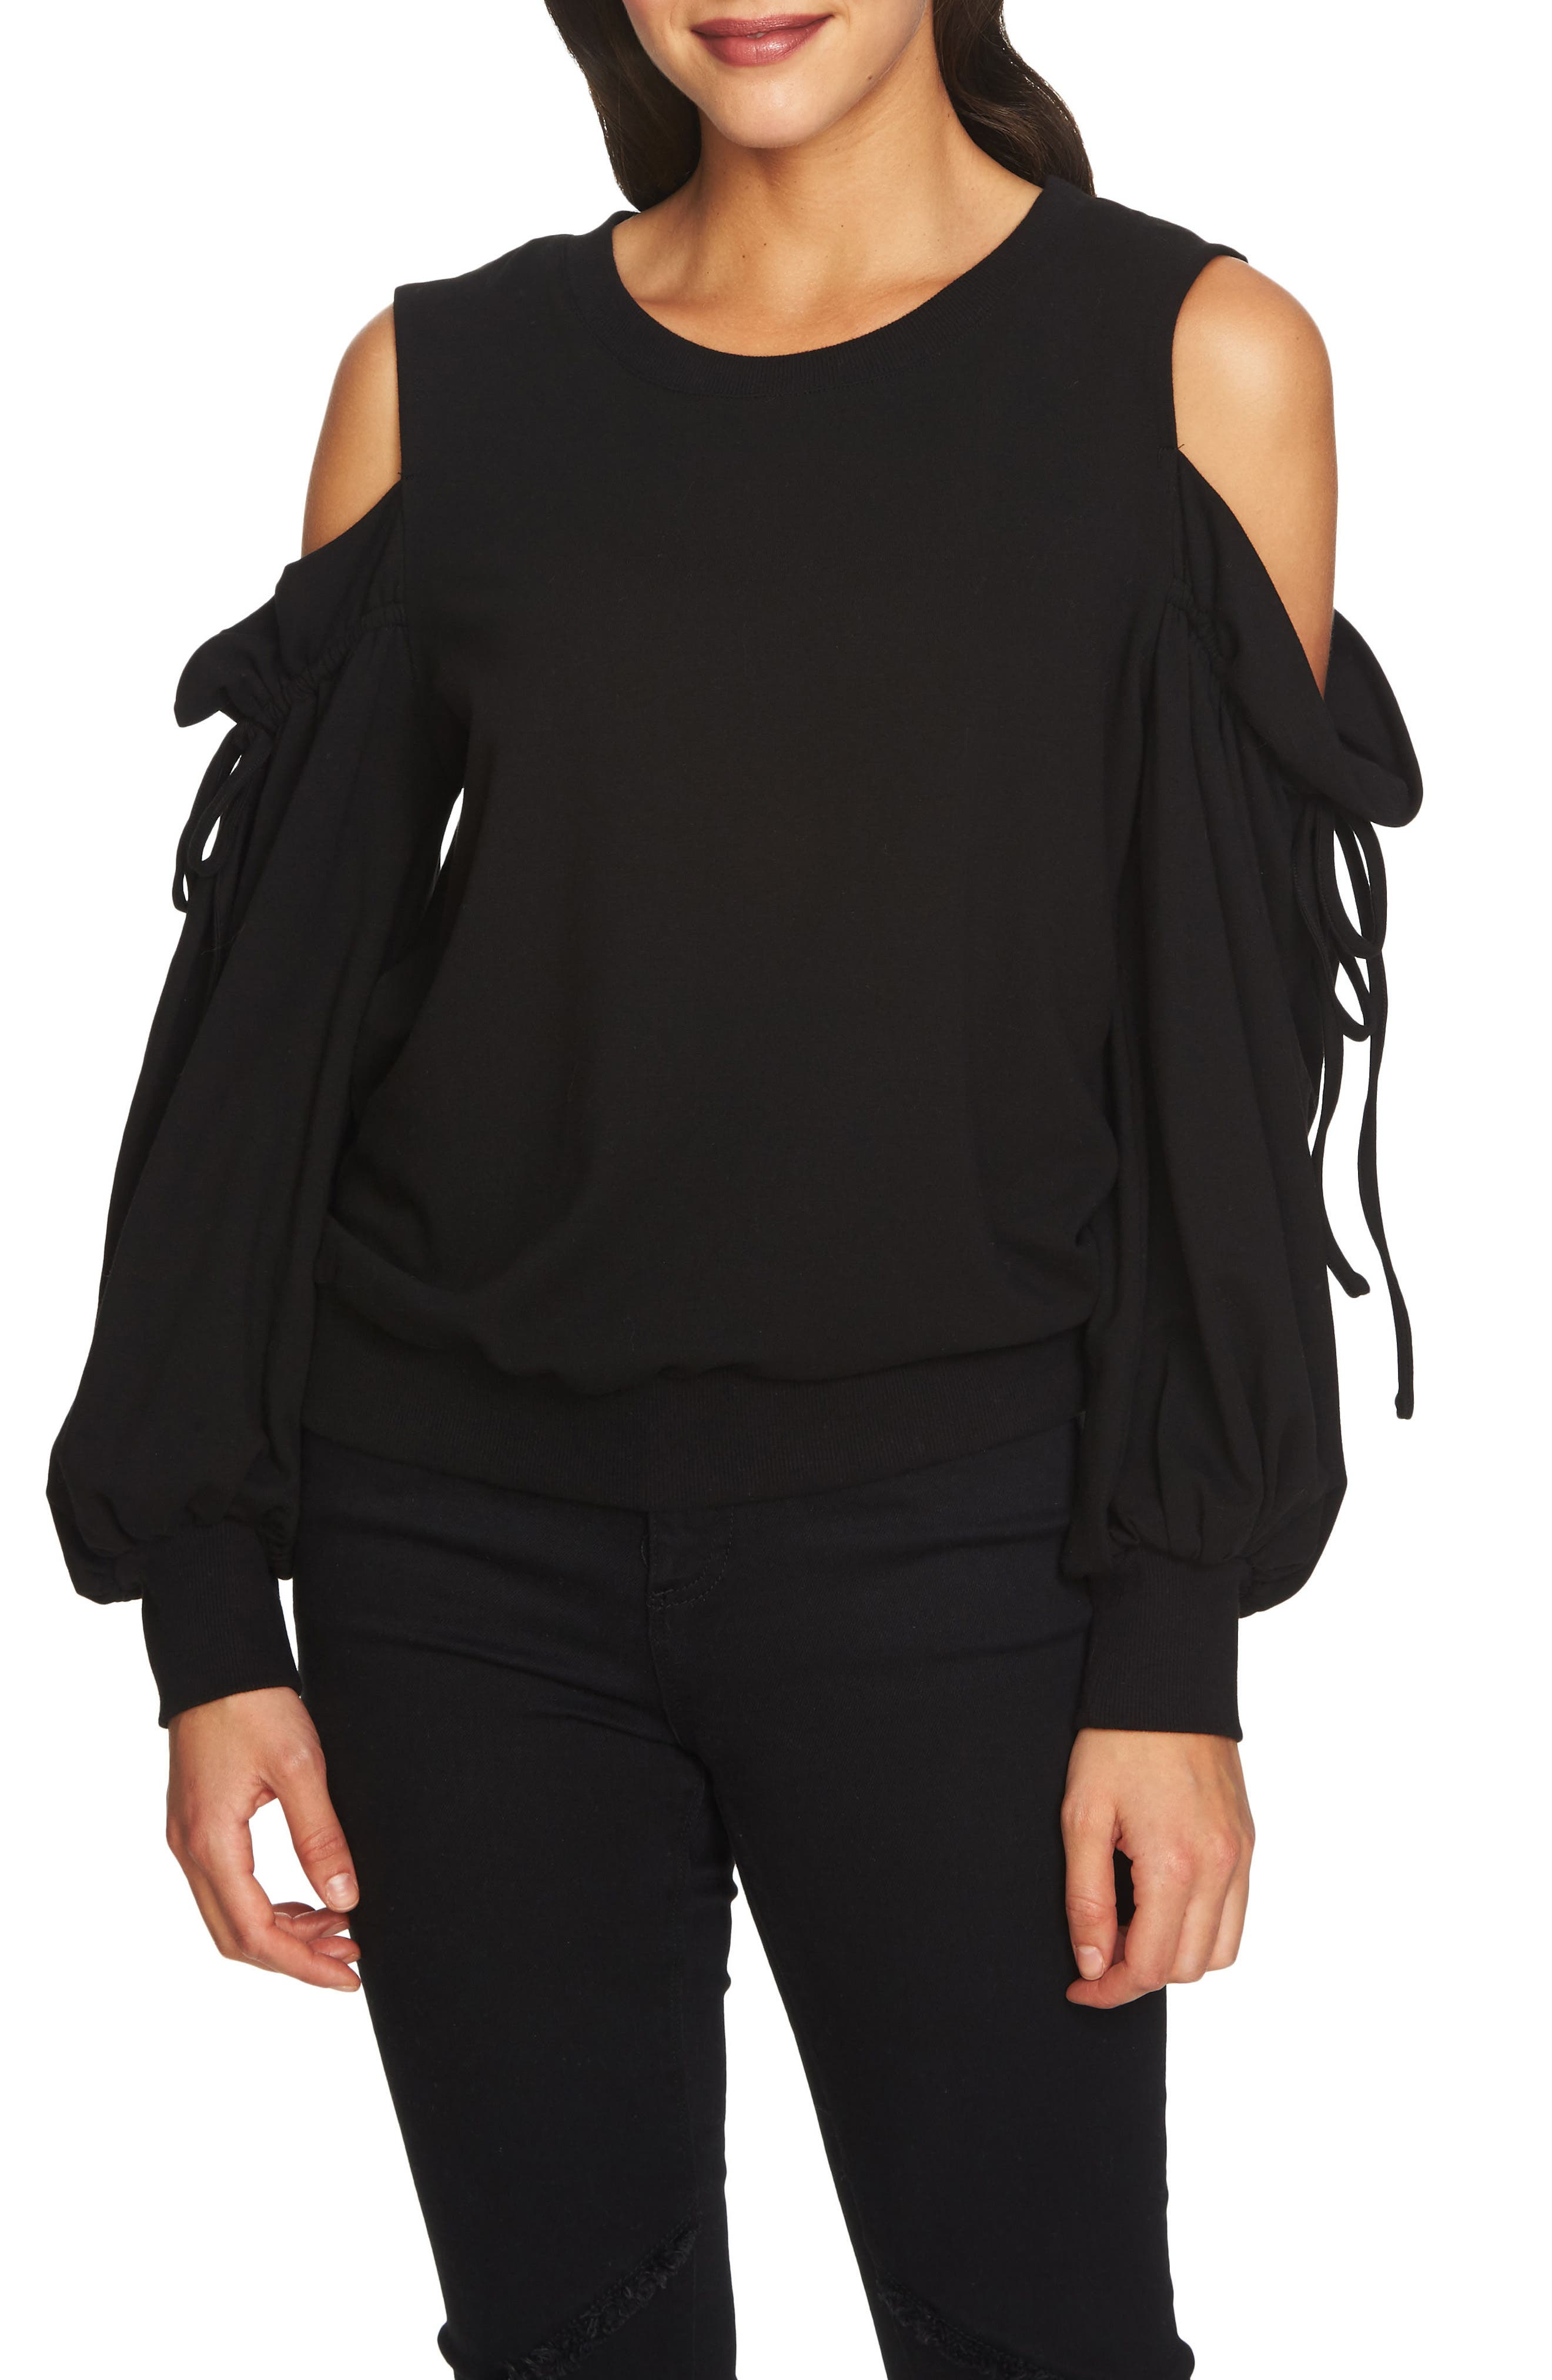 Main Image - 1.STATE Cold Shoulder Blouson Sweater